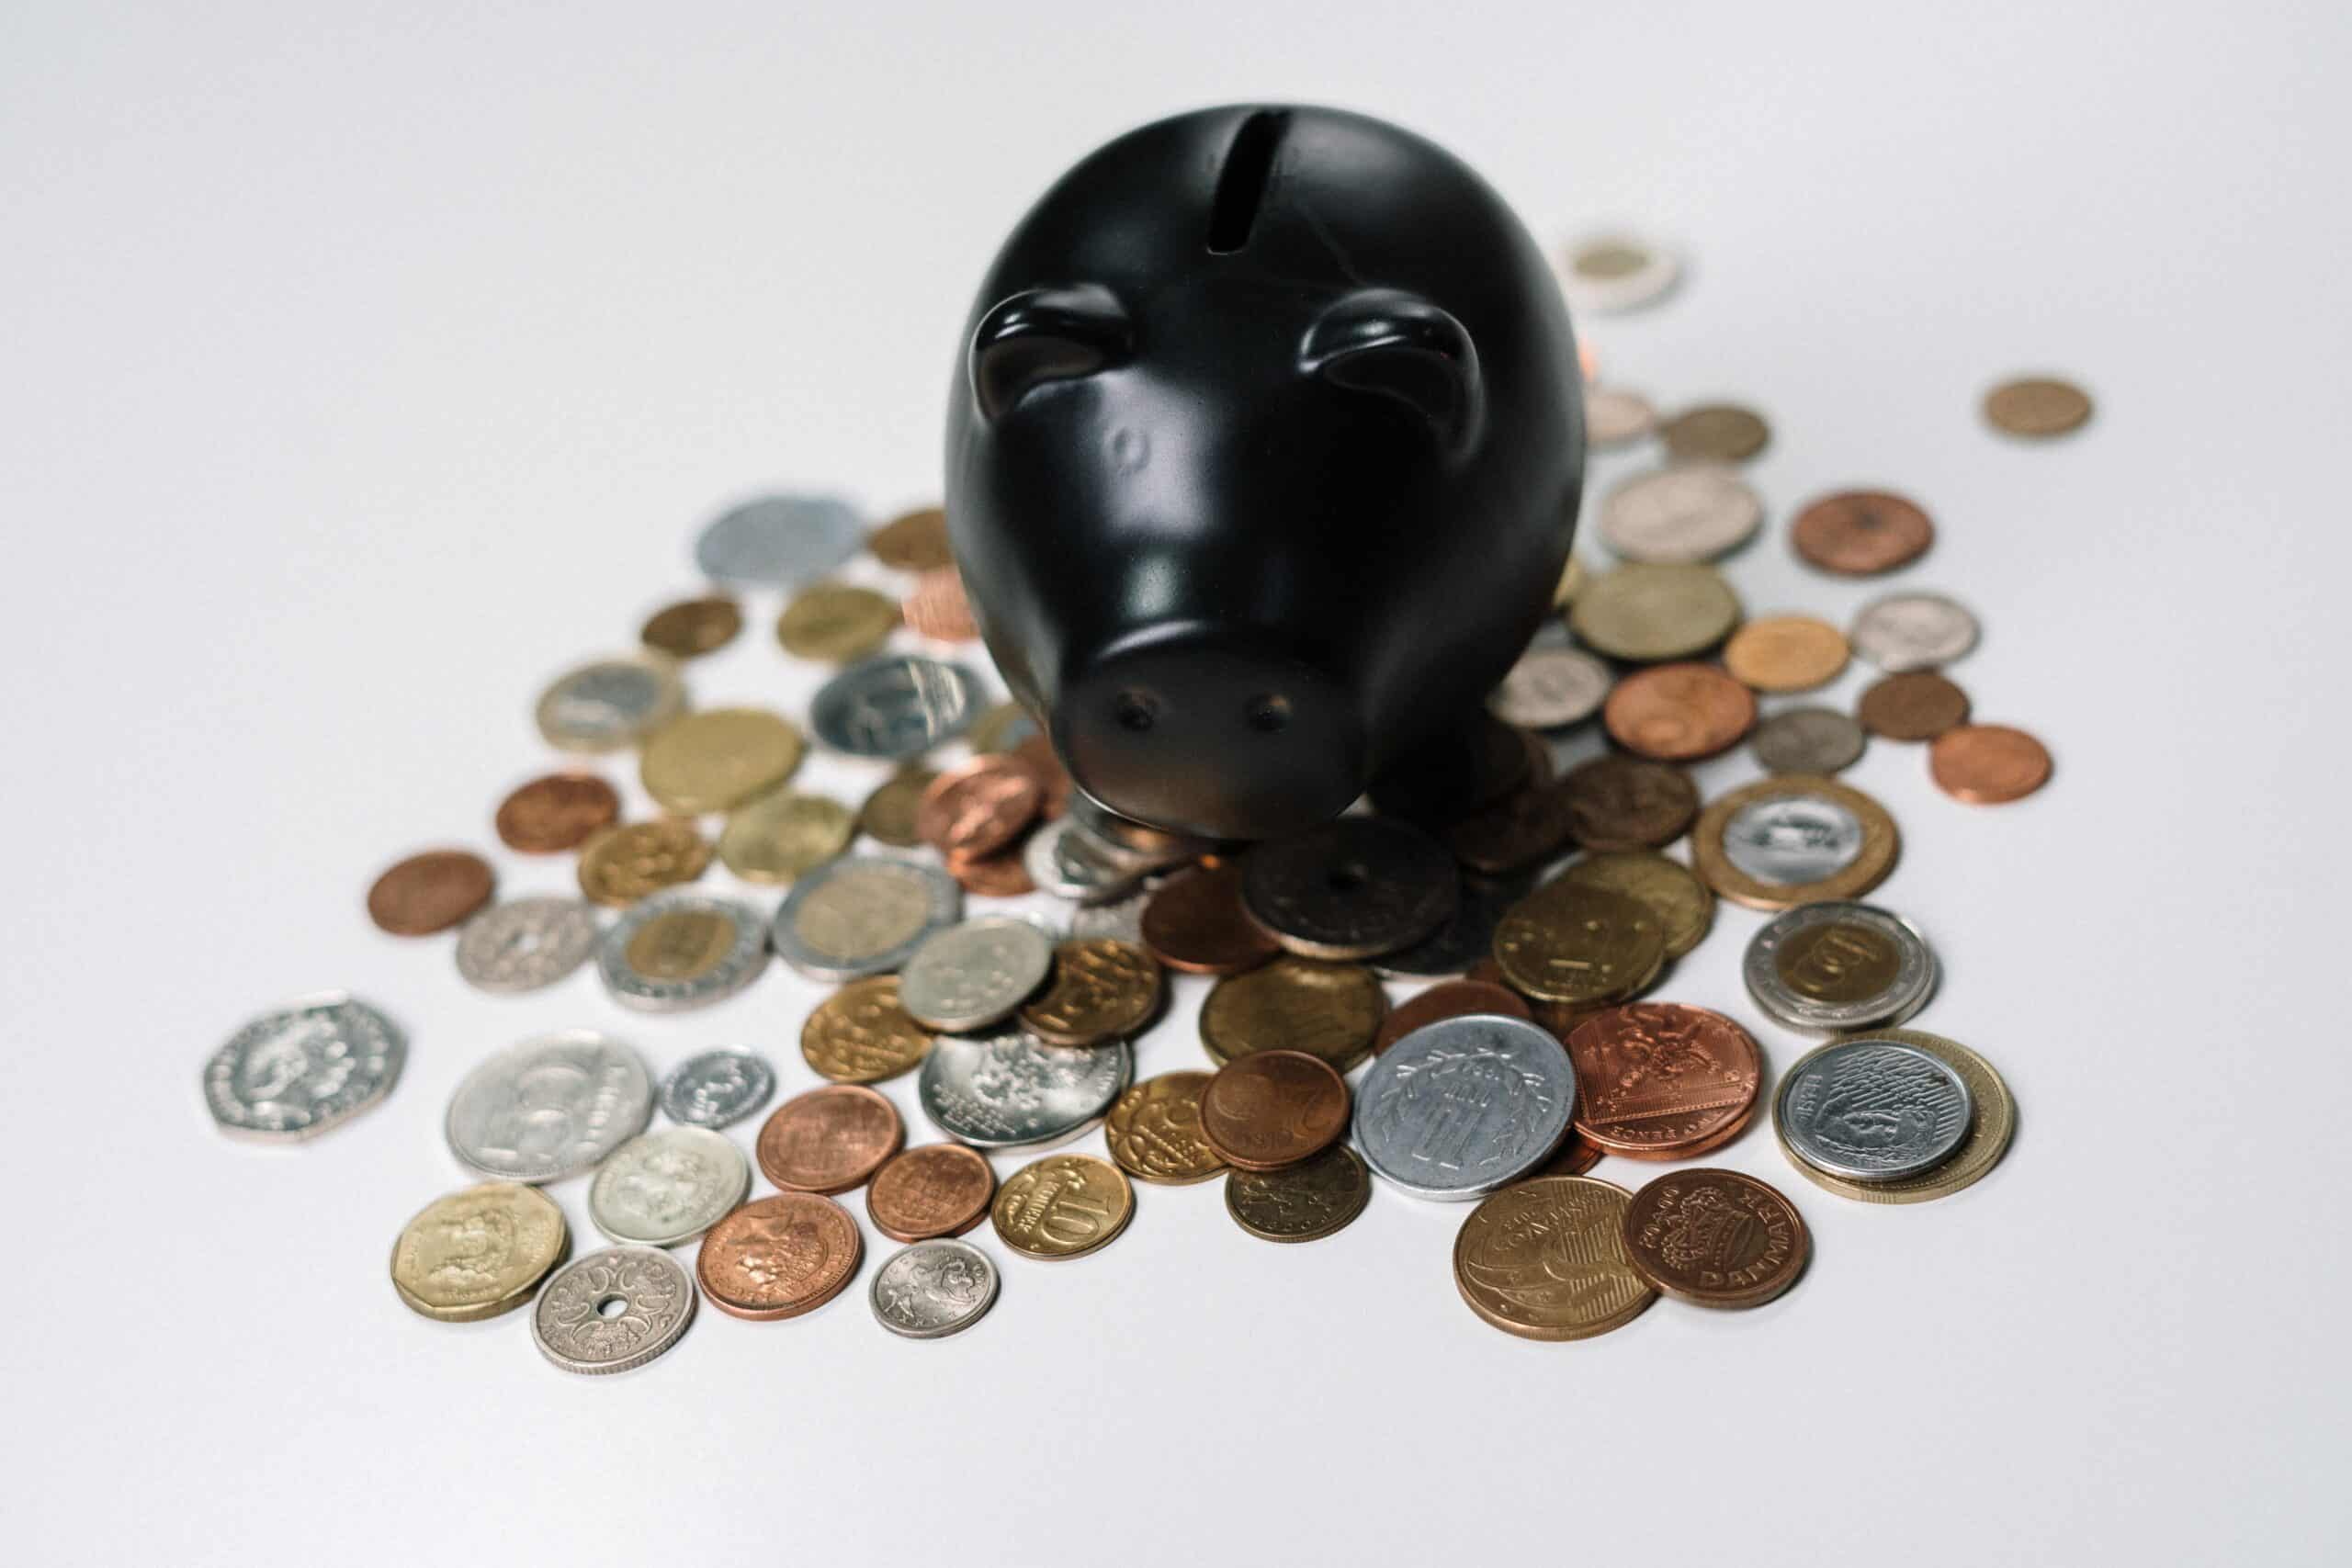 banking terms for saving